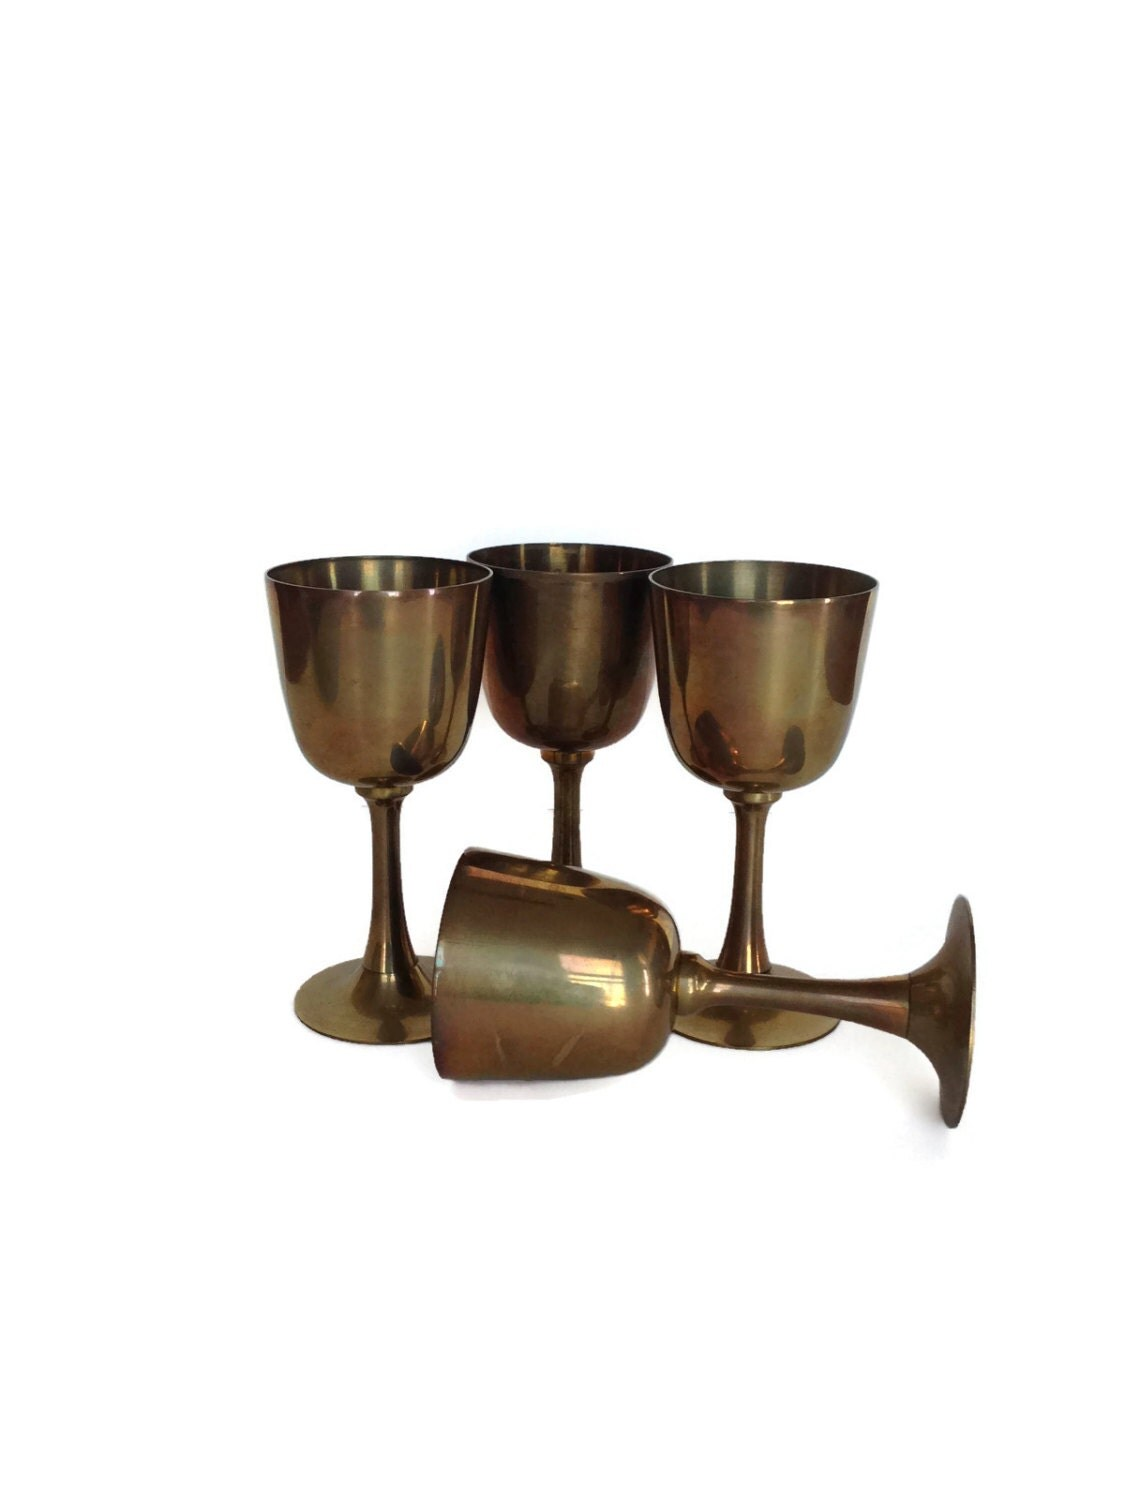 Metallic Wine Glasses : Vintage brass goblets metal wine glasses interpur by